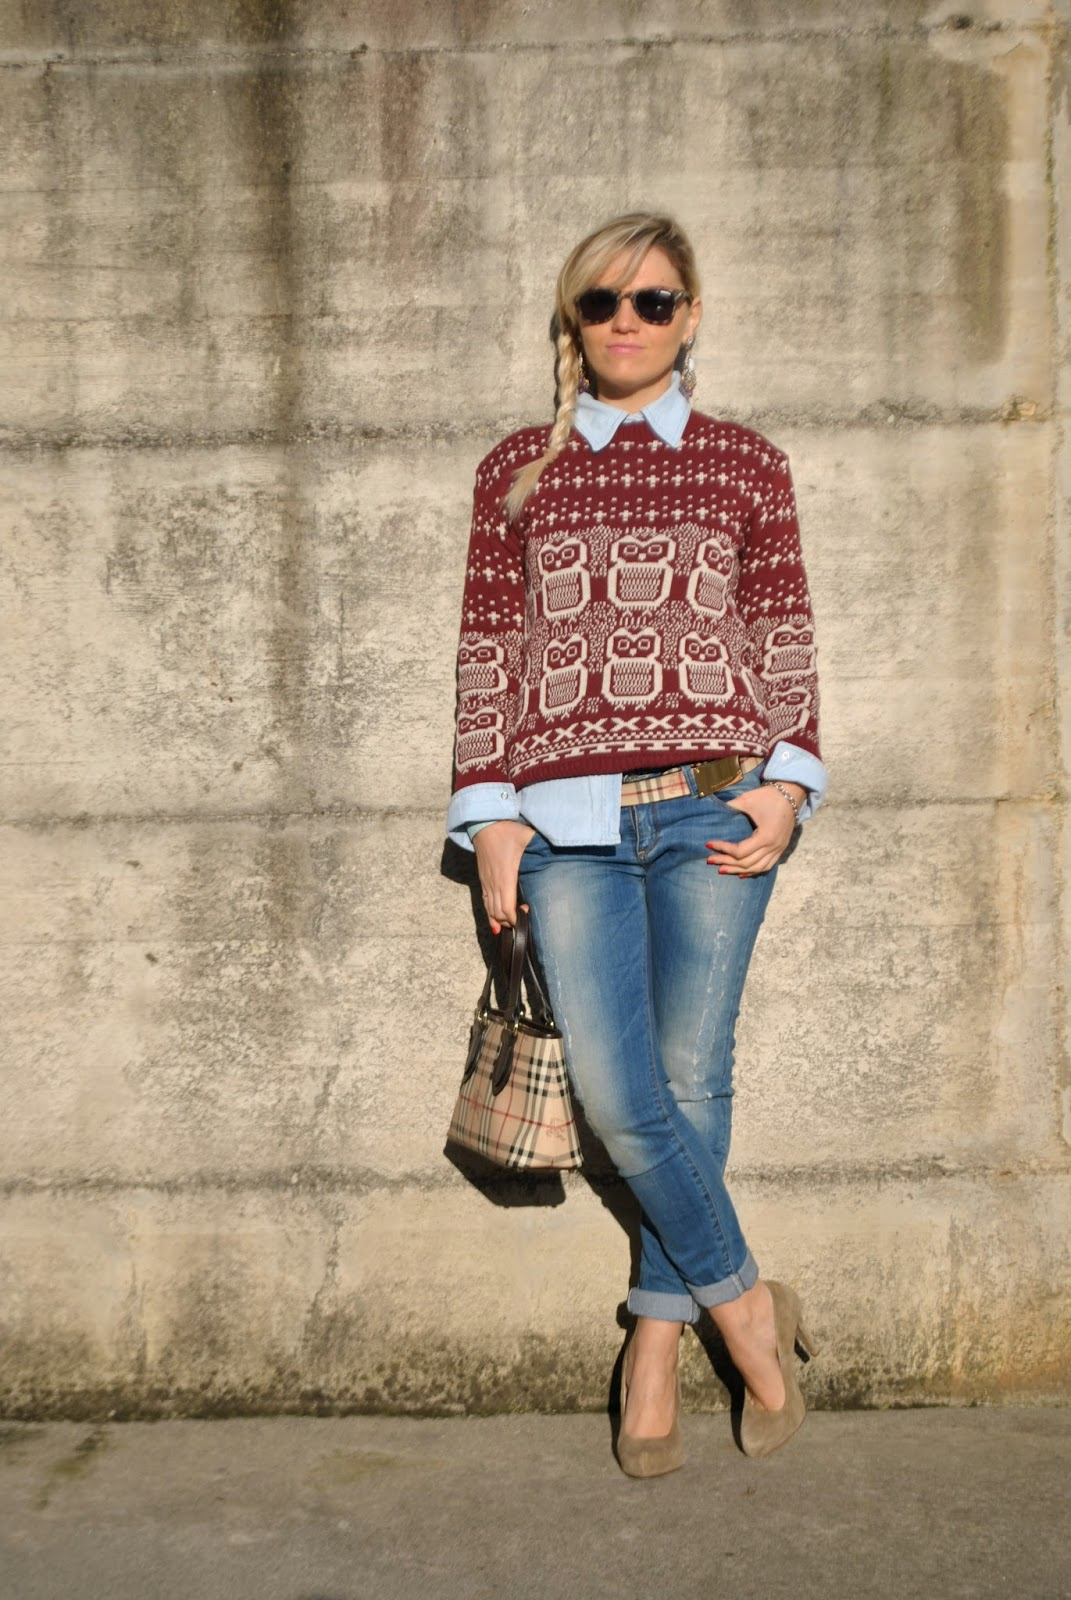 outfit invernali outfit gennaio fashion blogger italiane mariafelicia magno colorblock by felym mariafelicia magno fashion blogger fashion bloggers italy girls blonde girl legs